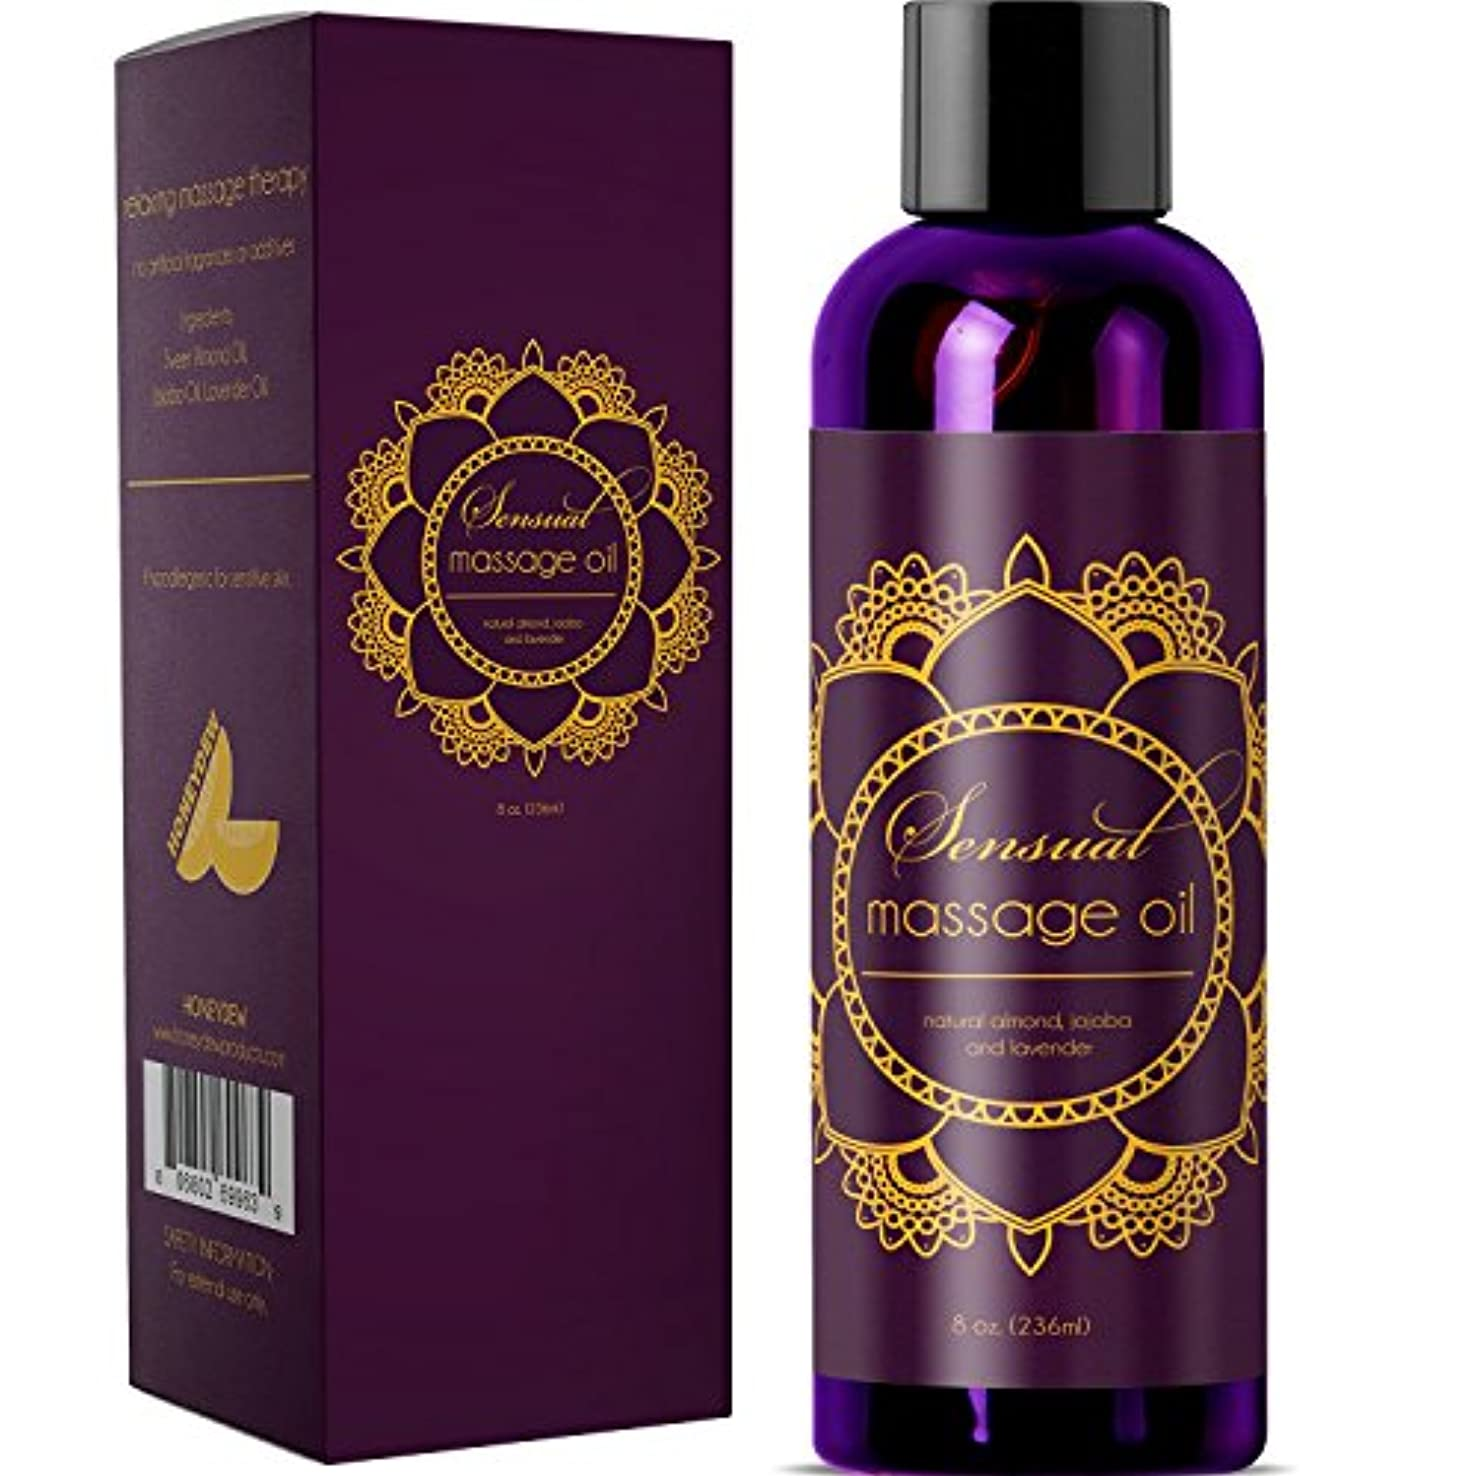 警察ブレイズ回復するSensual Massage Oil w/ Pure Lavender Oil - Relaxing Almond & Jojoba Oil - Women & Men - 100% Natural Hypoallergenic...